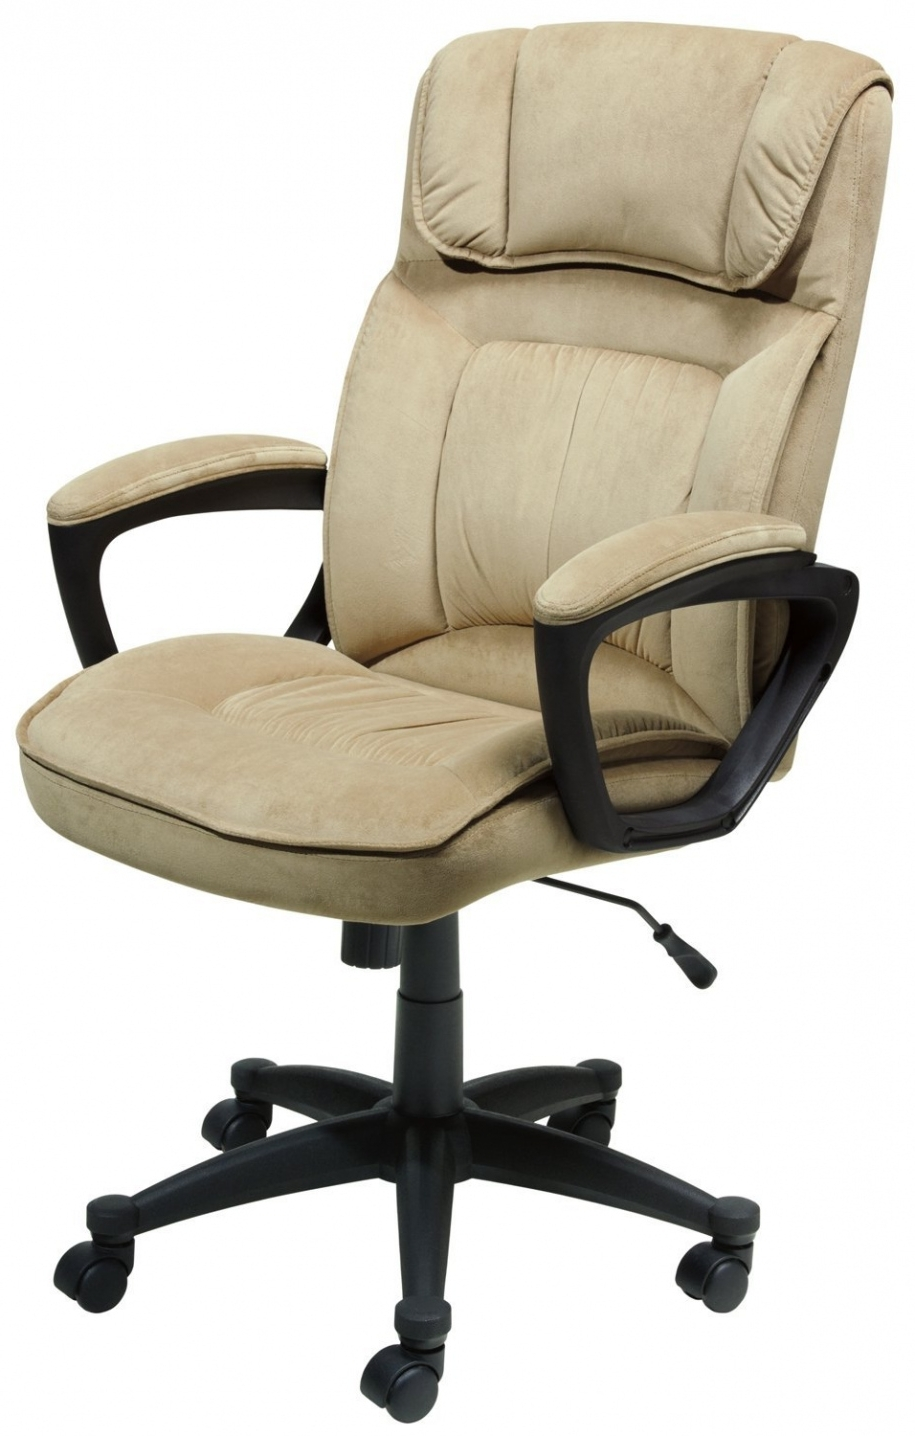 Heavy Duty Executive Office Chairs – Best Ergonomic Desk Chair With Widely Used Heavy Duty Executive Office Chairs (View 5 of 20)